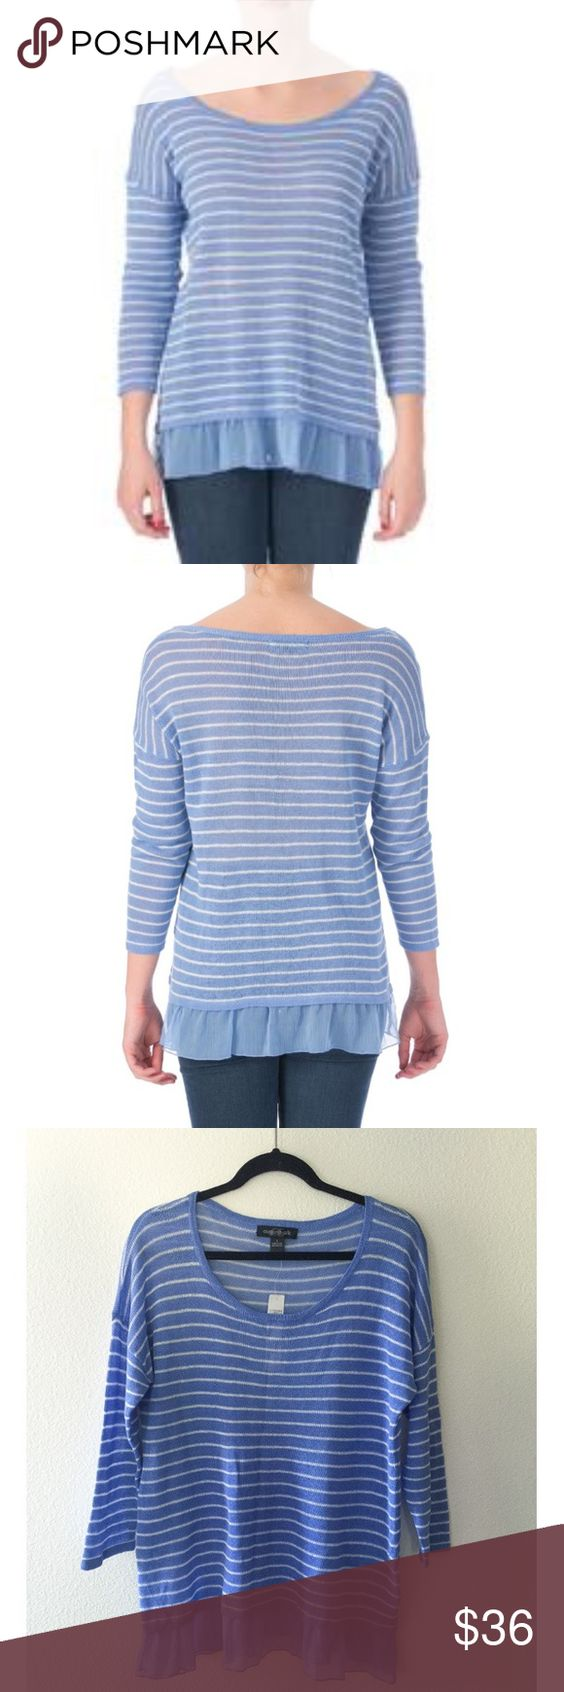 Crewneck Striped (White & Blue) Sweater sz L NWT Crewneck Striped (White & Blue) Sweater sz L NWT 💙 It's new with tags, never been worn.                 🚫NO TRADES 🚫NO PAYPAL august silk Sweaters